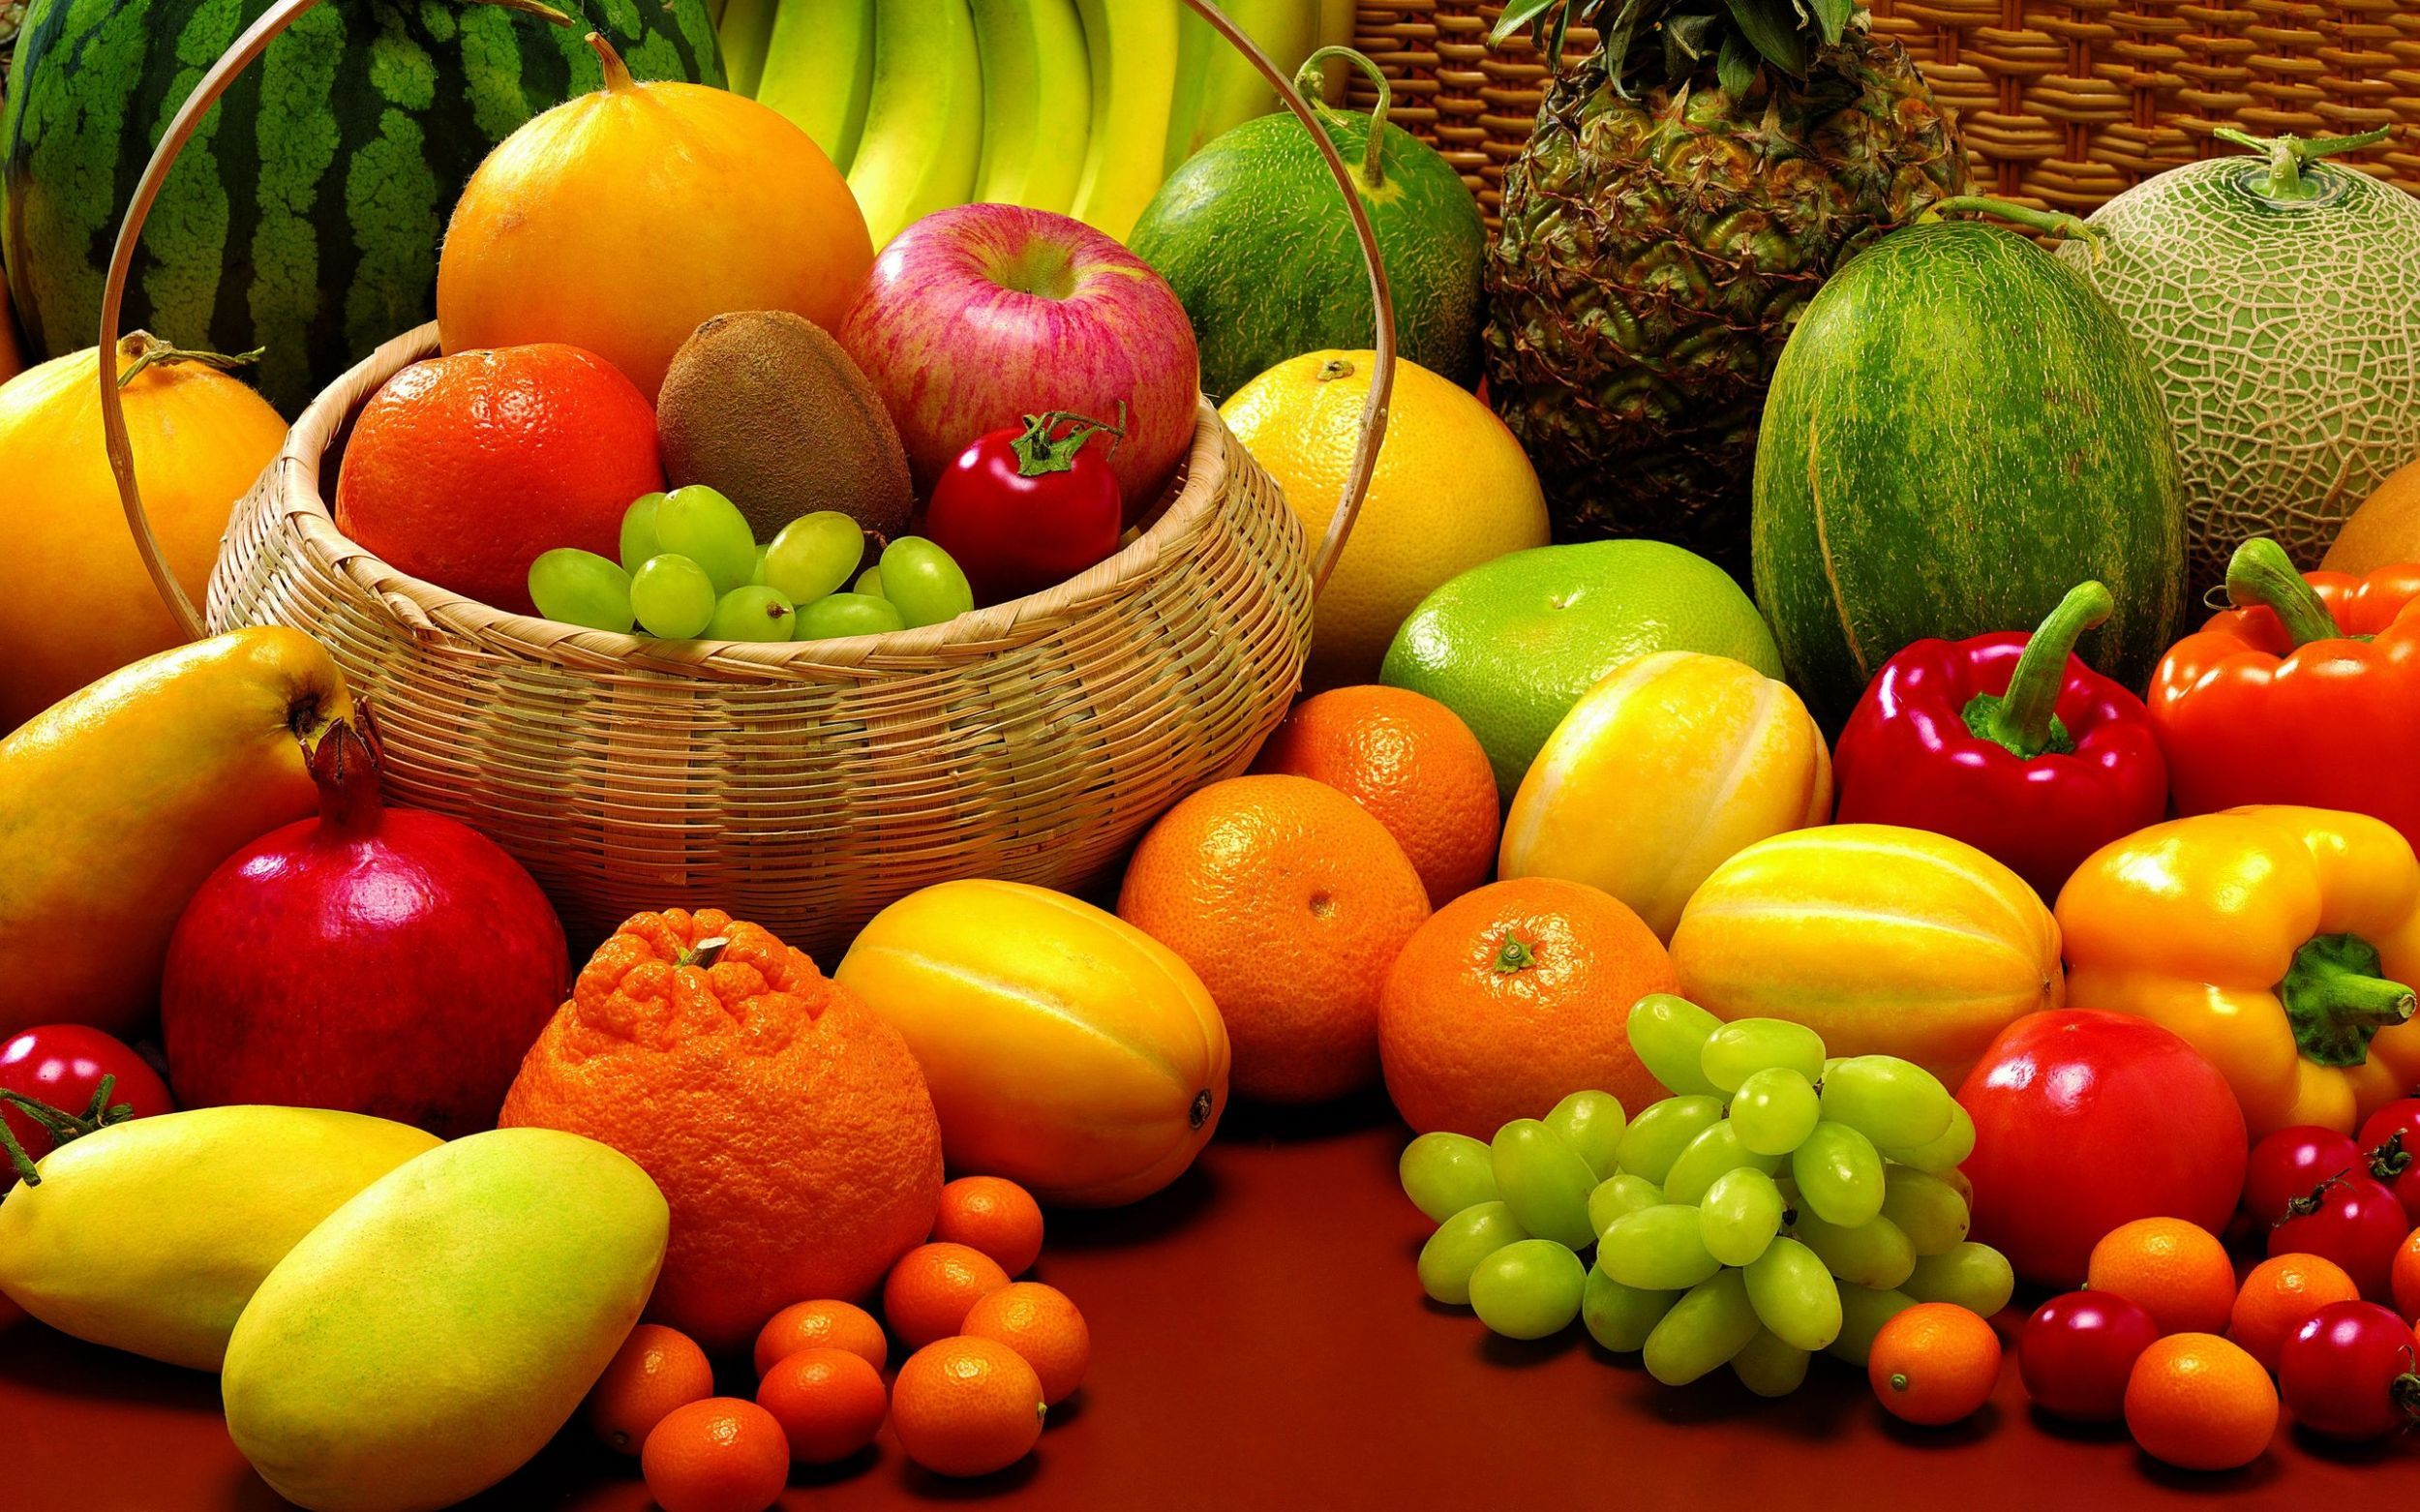 Fruits Wallpapers   Top Fruits Backgrounds   WallpaperAccess 2500x1562